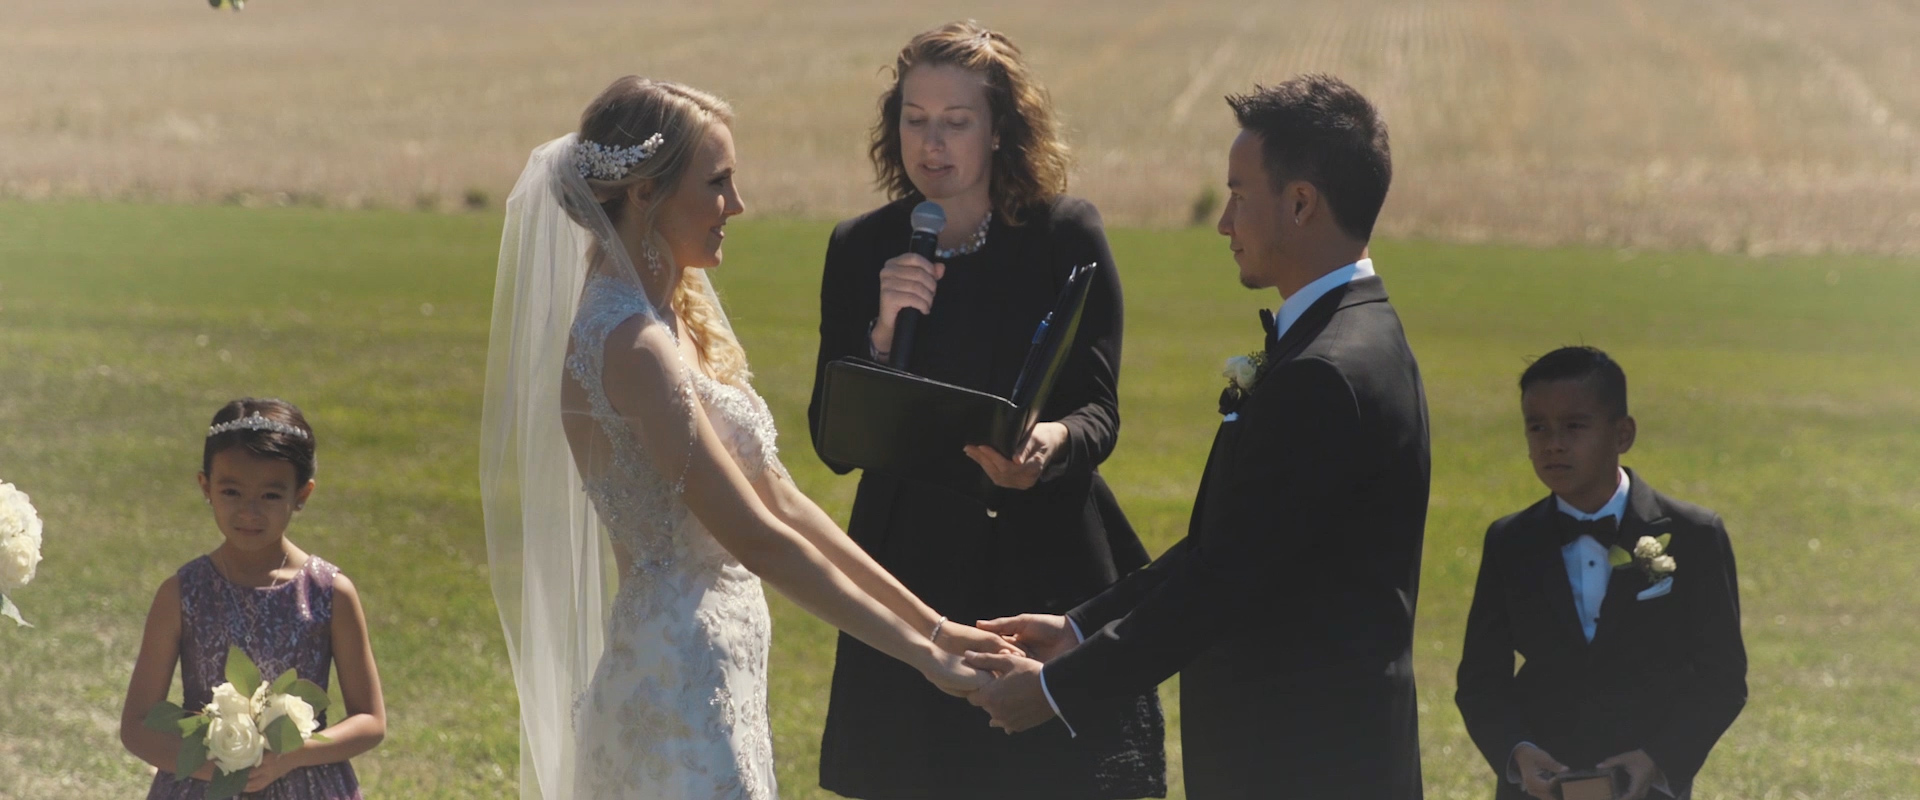 An image of a bride and groom at their wedding ceremony in Collingwood; taken from a Toronto Wedding Video